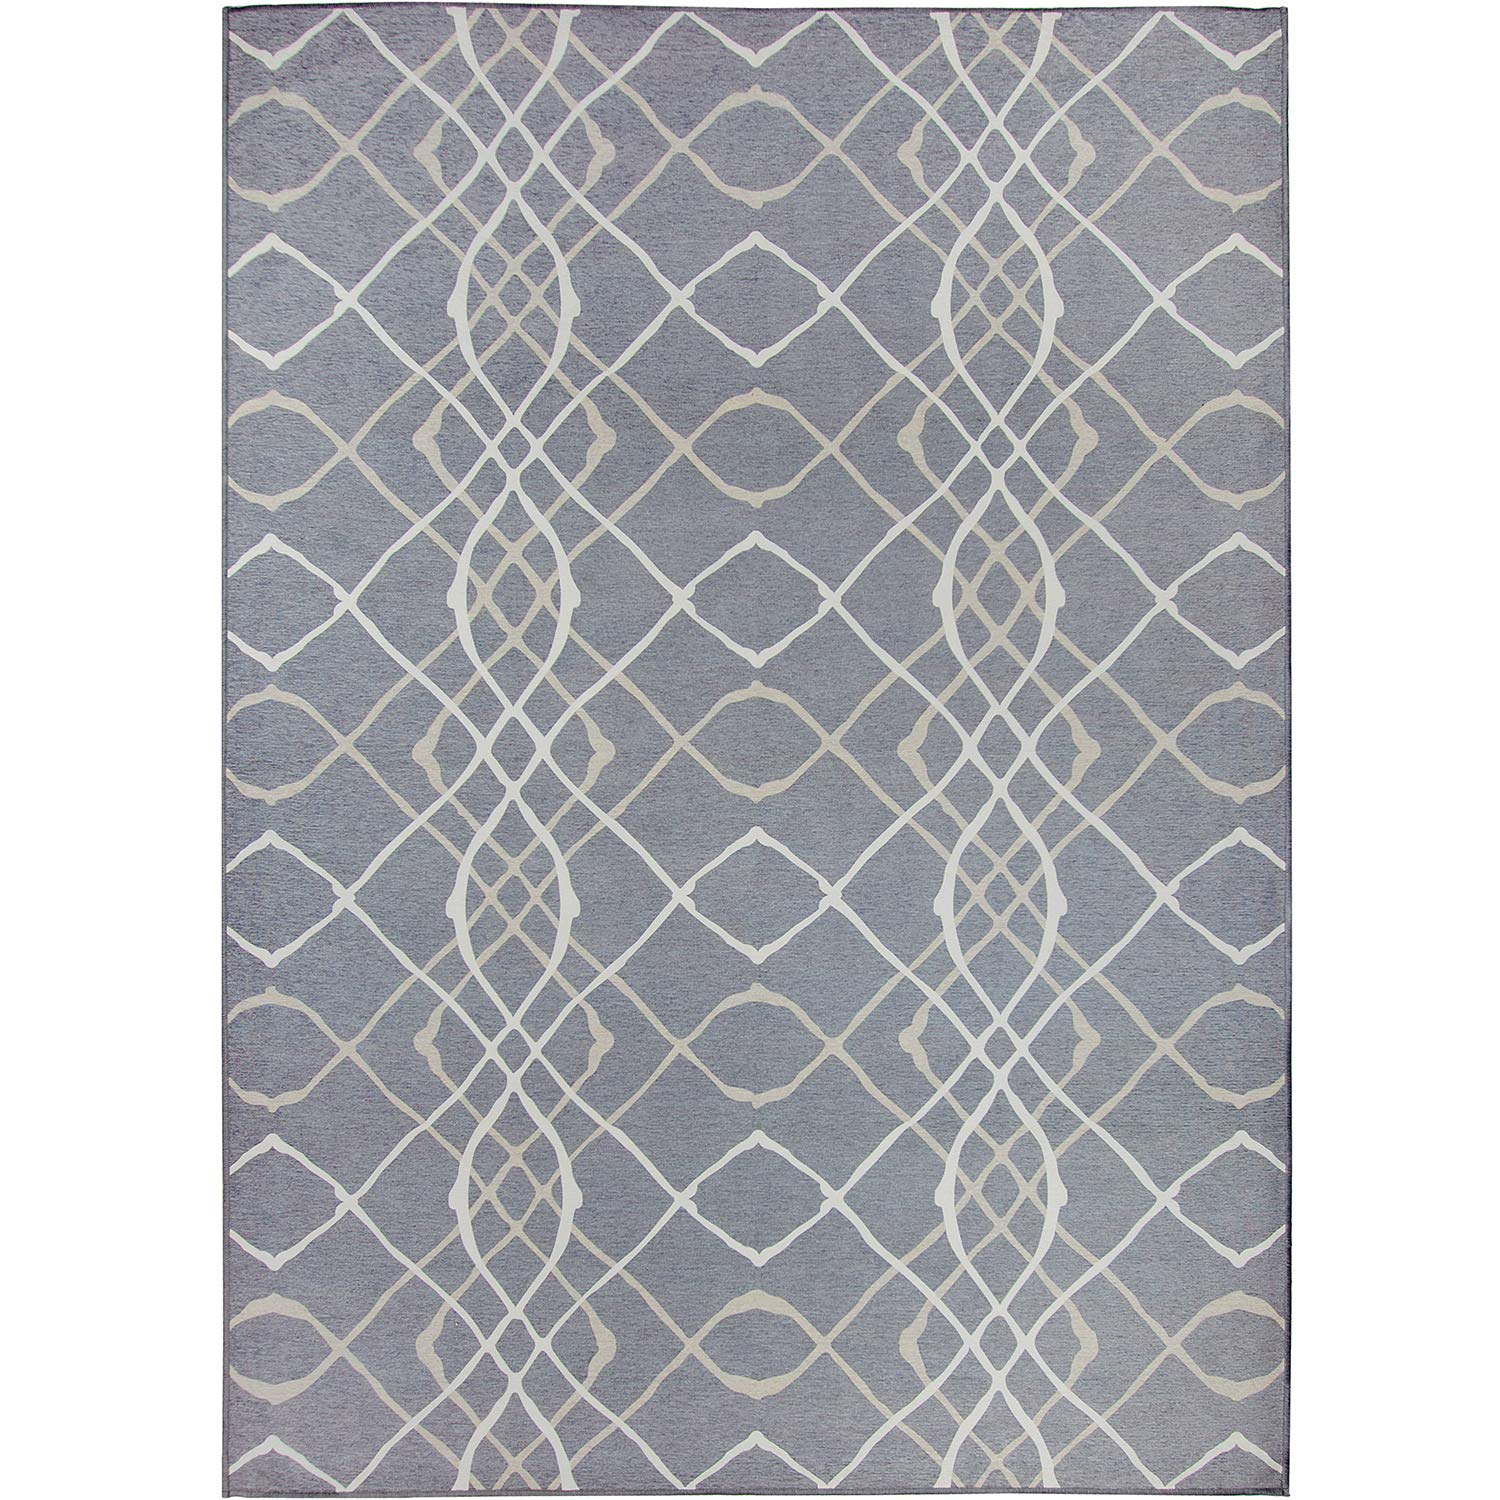 RUGGABLE Washable Stain Resistant Indoor/Outdoor, Kids, Pets, and Dog Friendly Area Rug 5'x7' Amara Grey